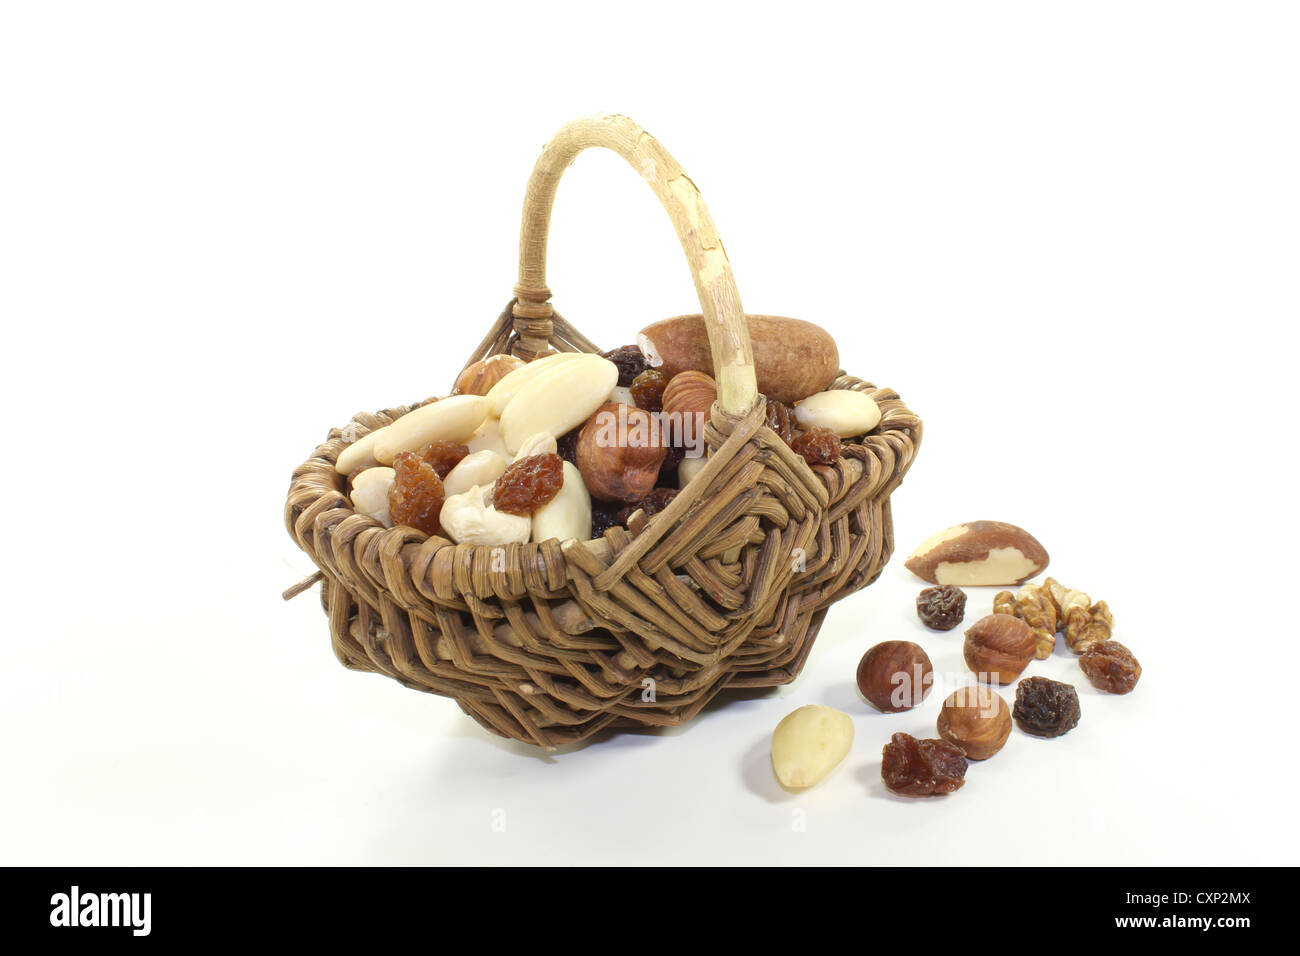 fresh mixed nuts and raisins as a snack on a bright background - Stock Image